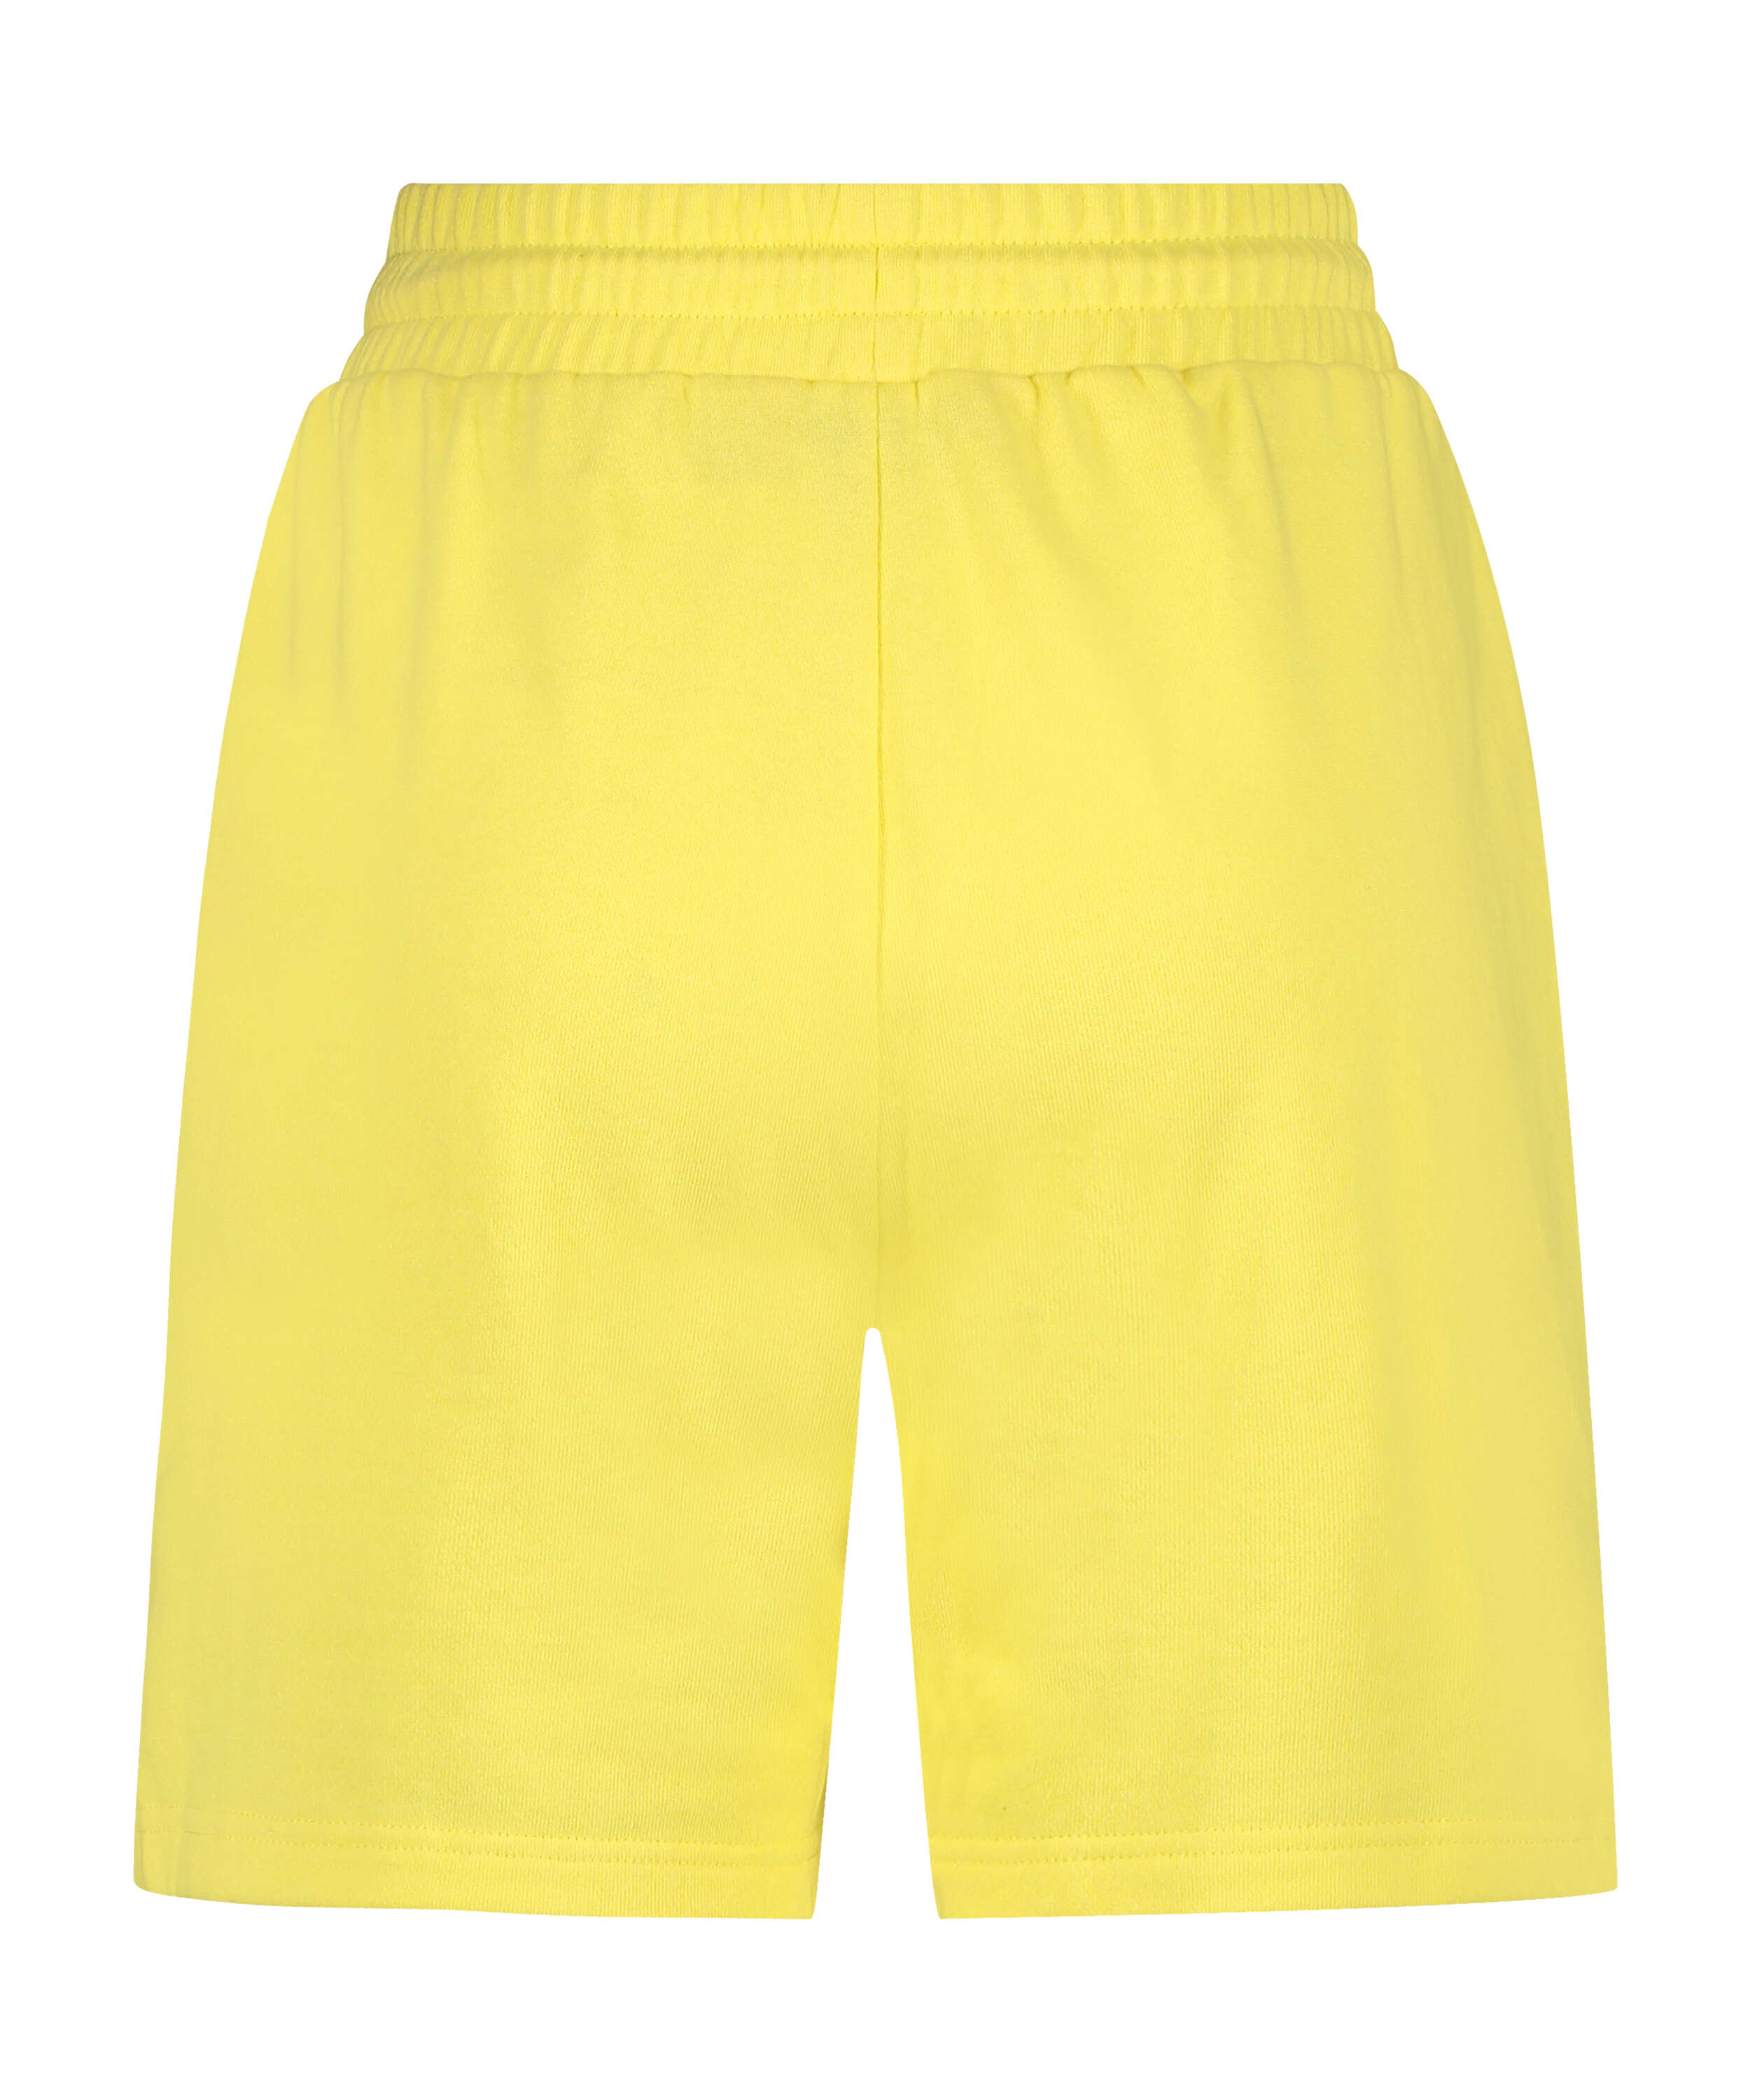 Snuggle Me Bermuda Shorts, Yellow, main